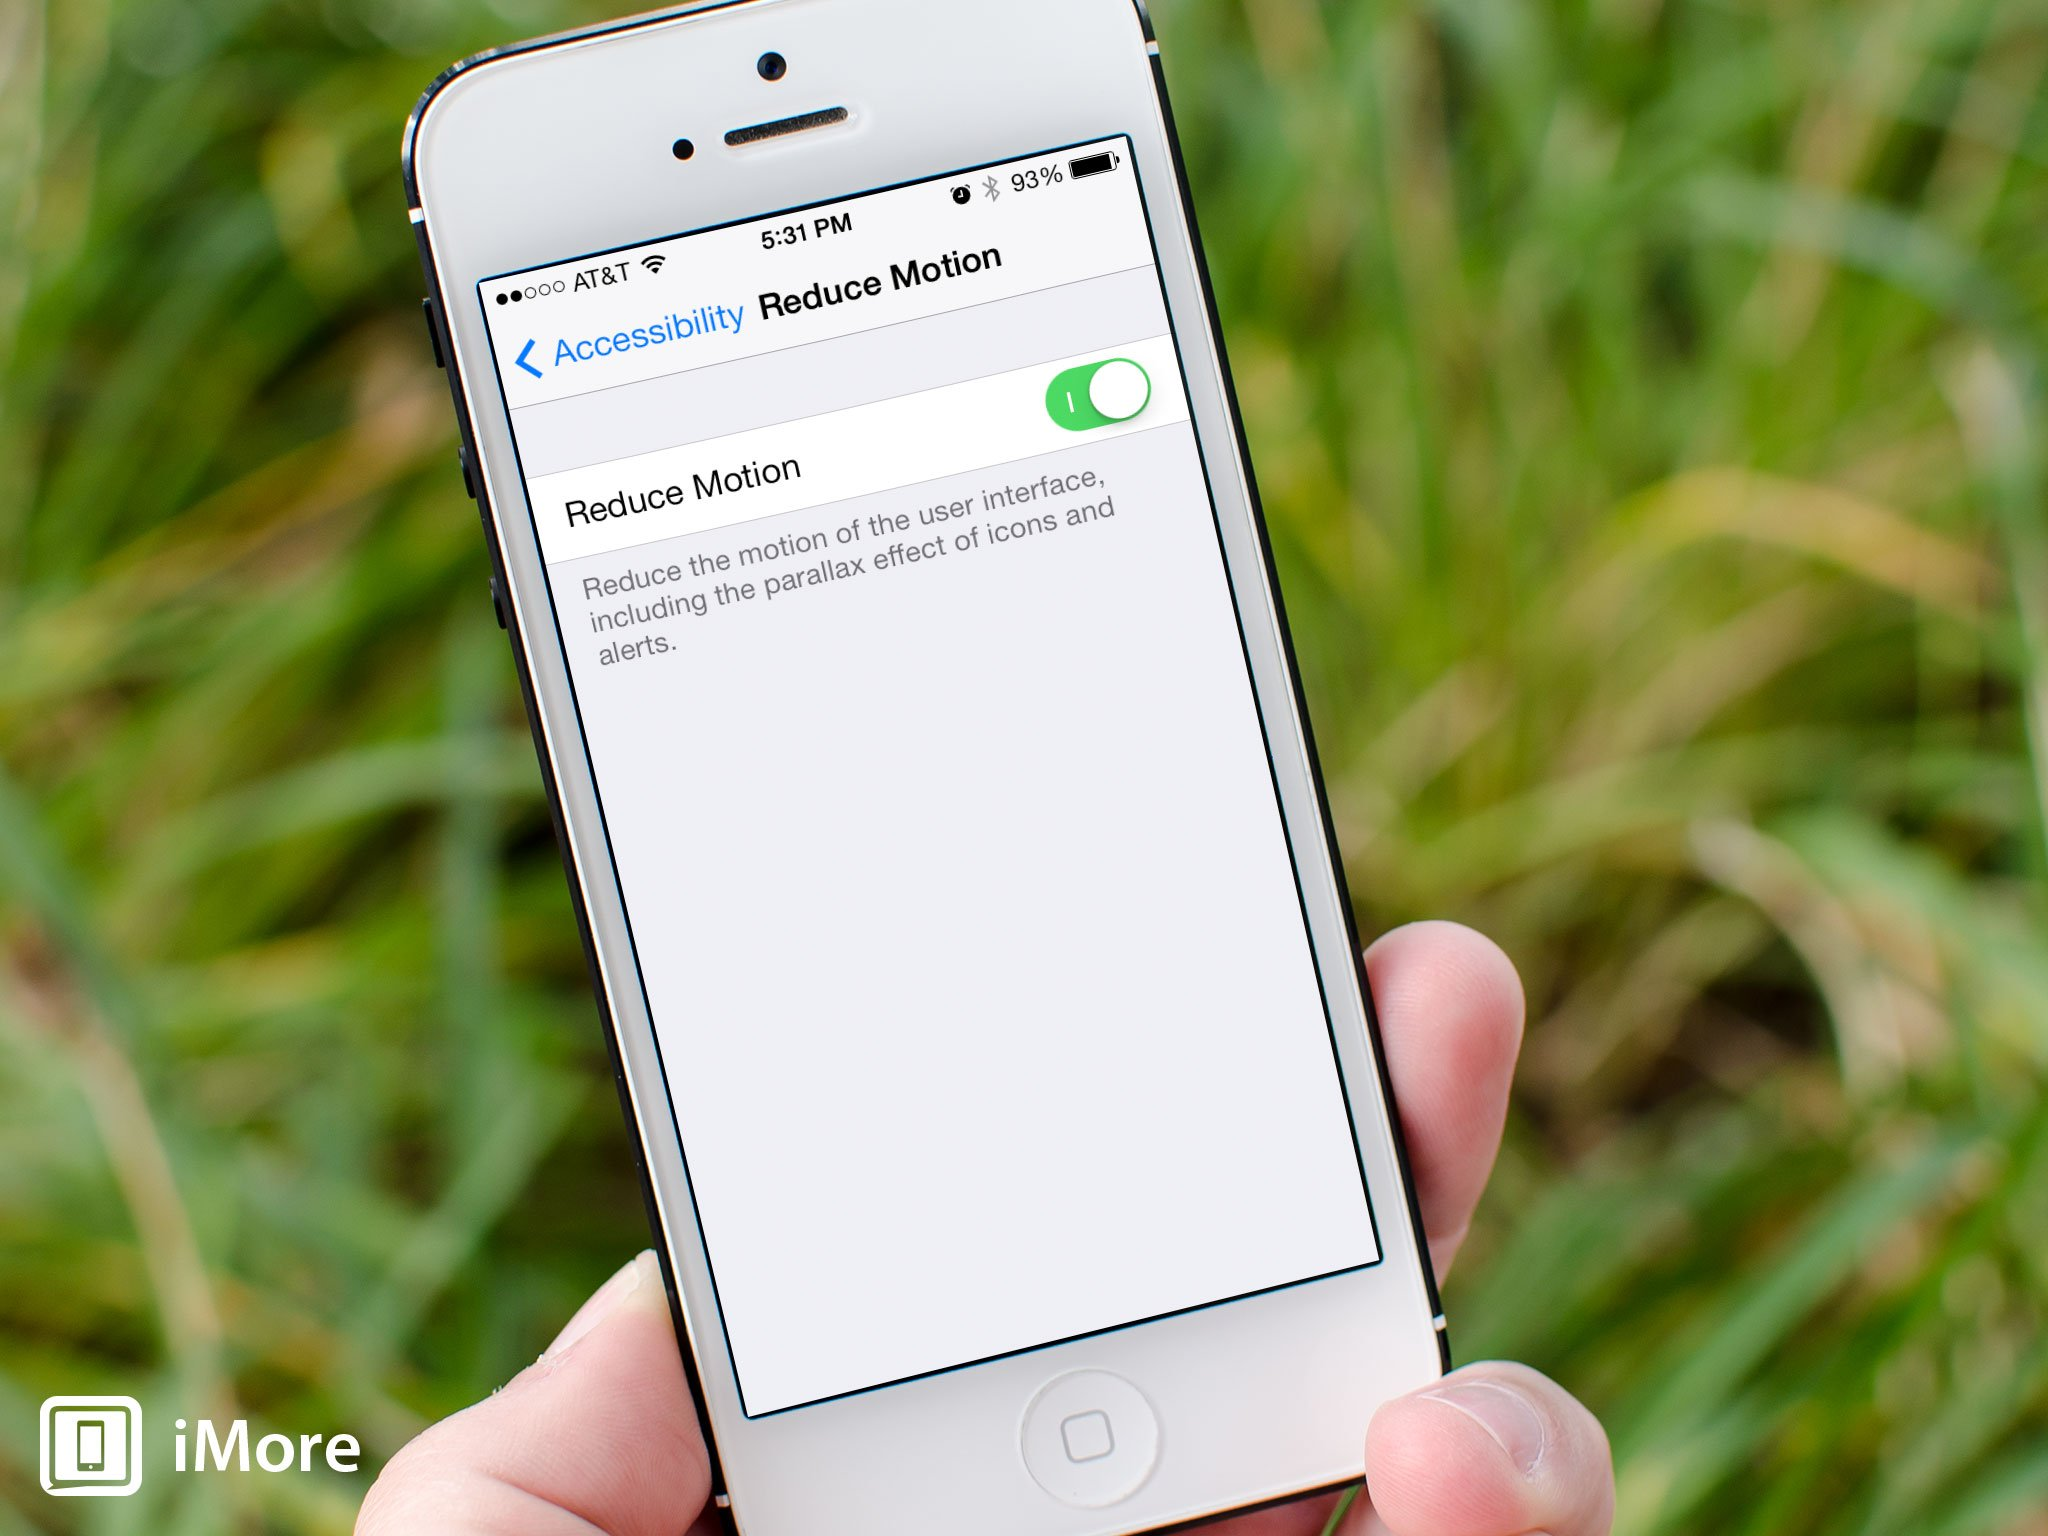 How to reduce motion and speed up transitions on iPhone and iPad with IOS 7.0.3